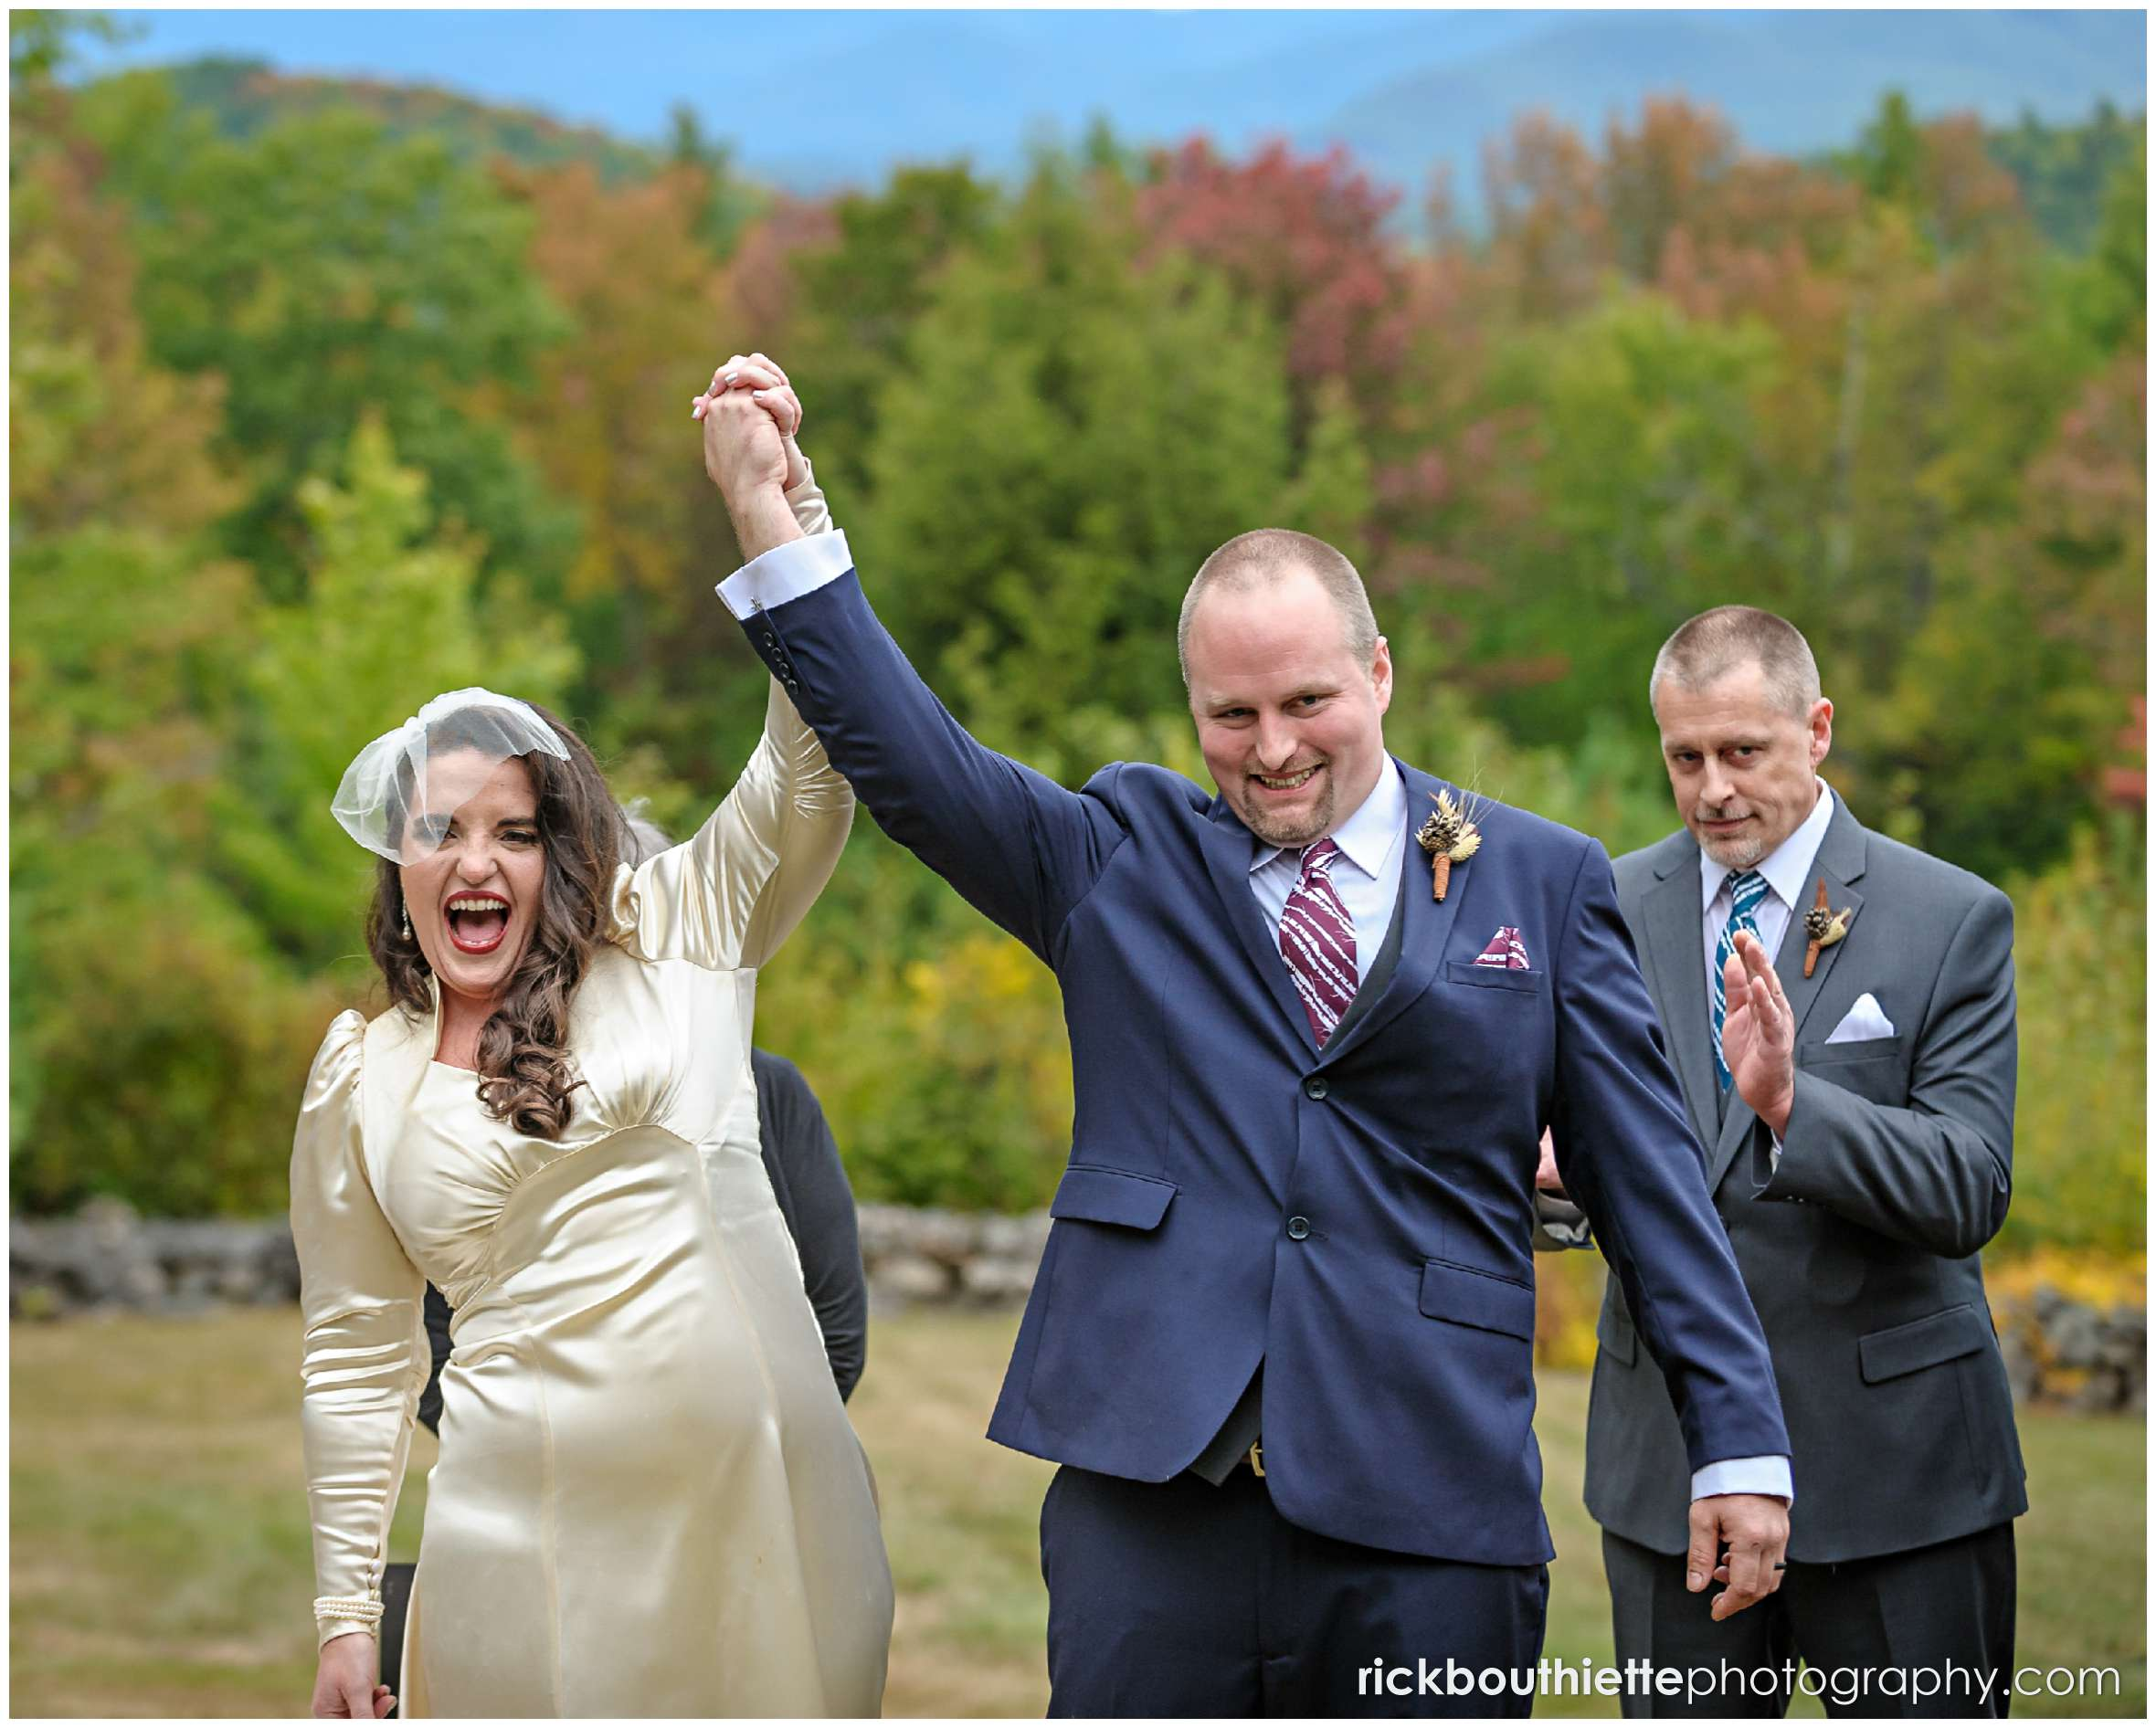 happy bride and groom celebrate as they walk down the aisle after their wedding ceremony